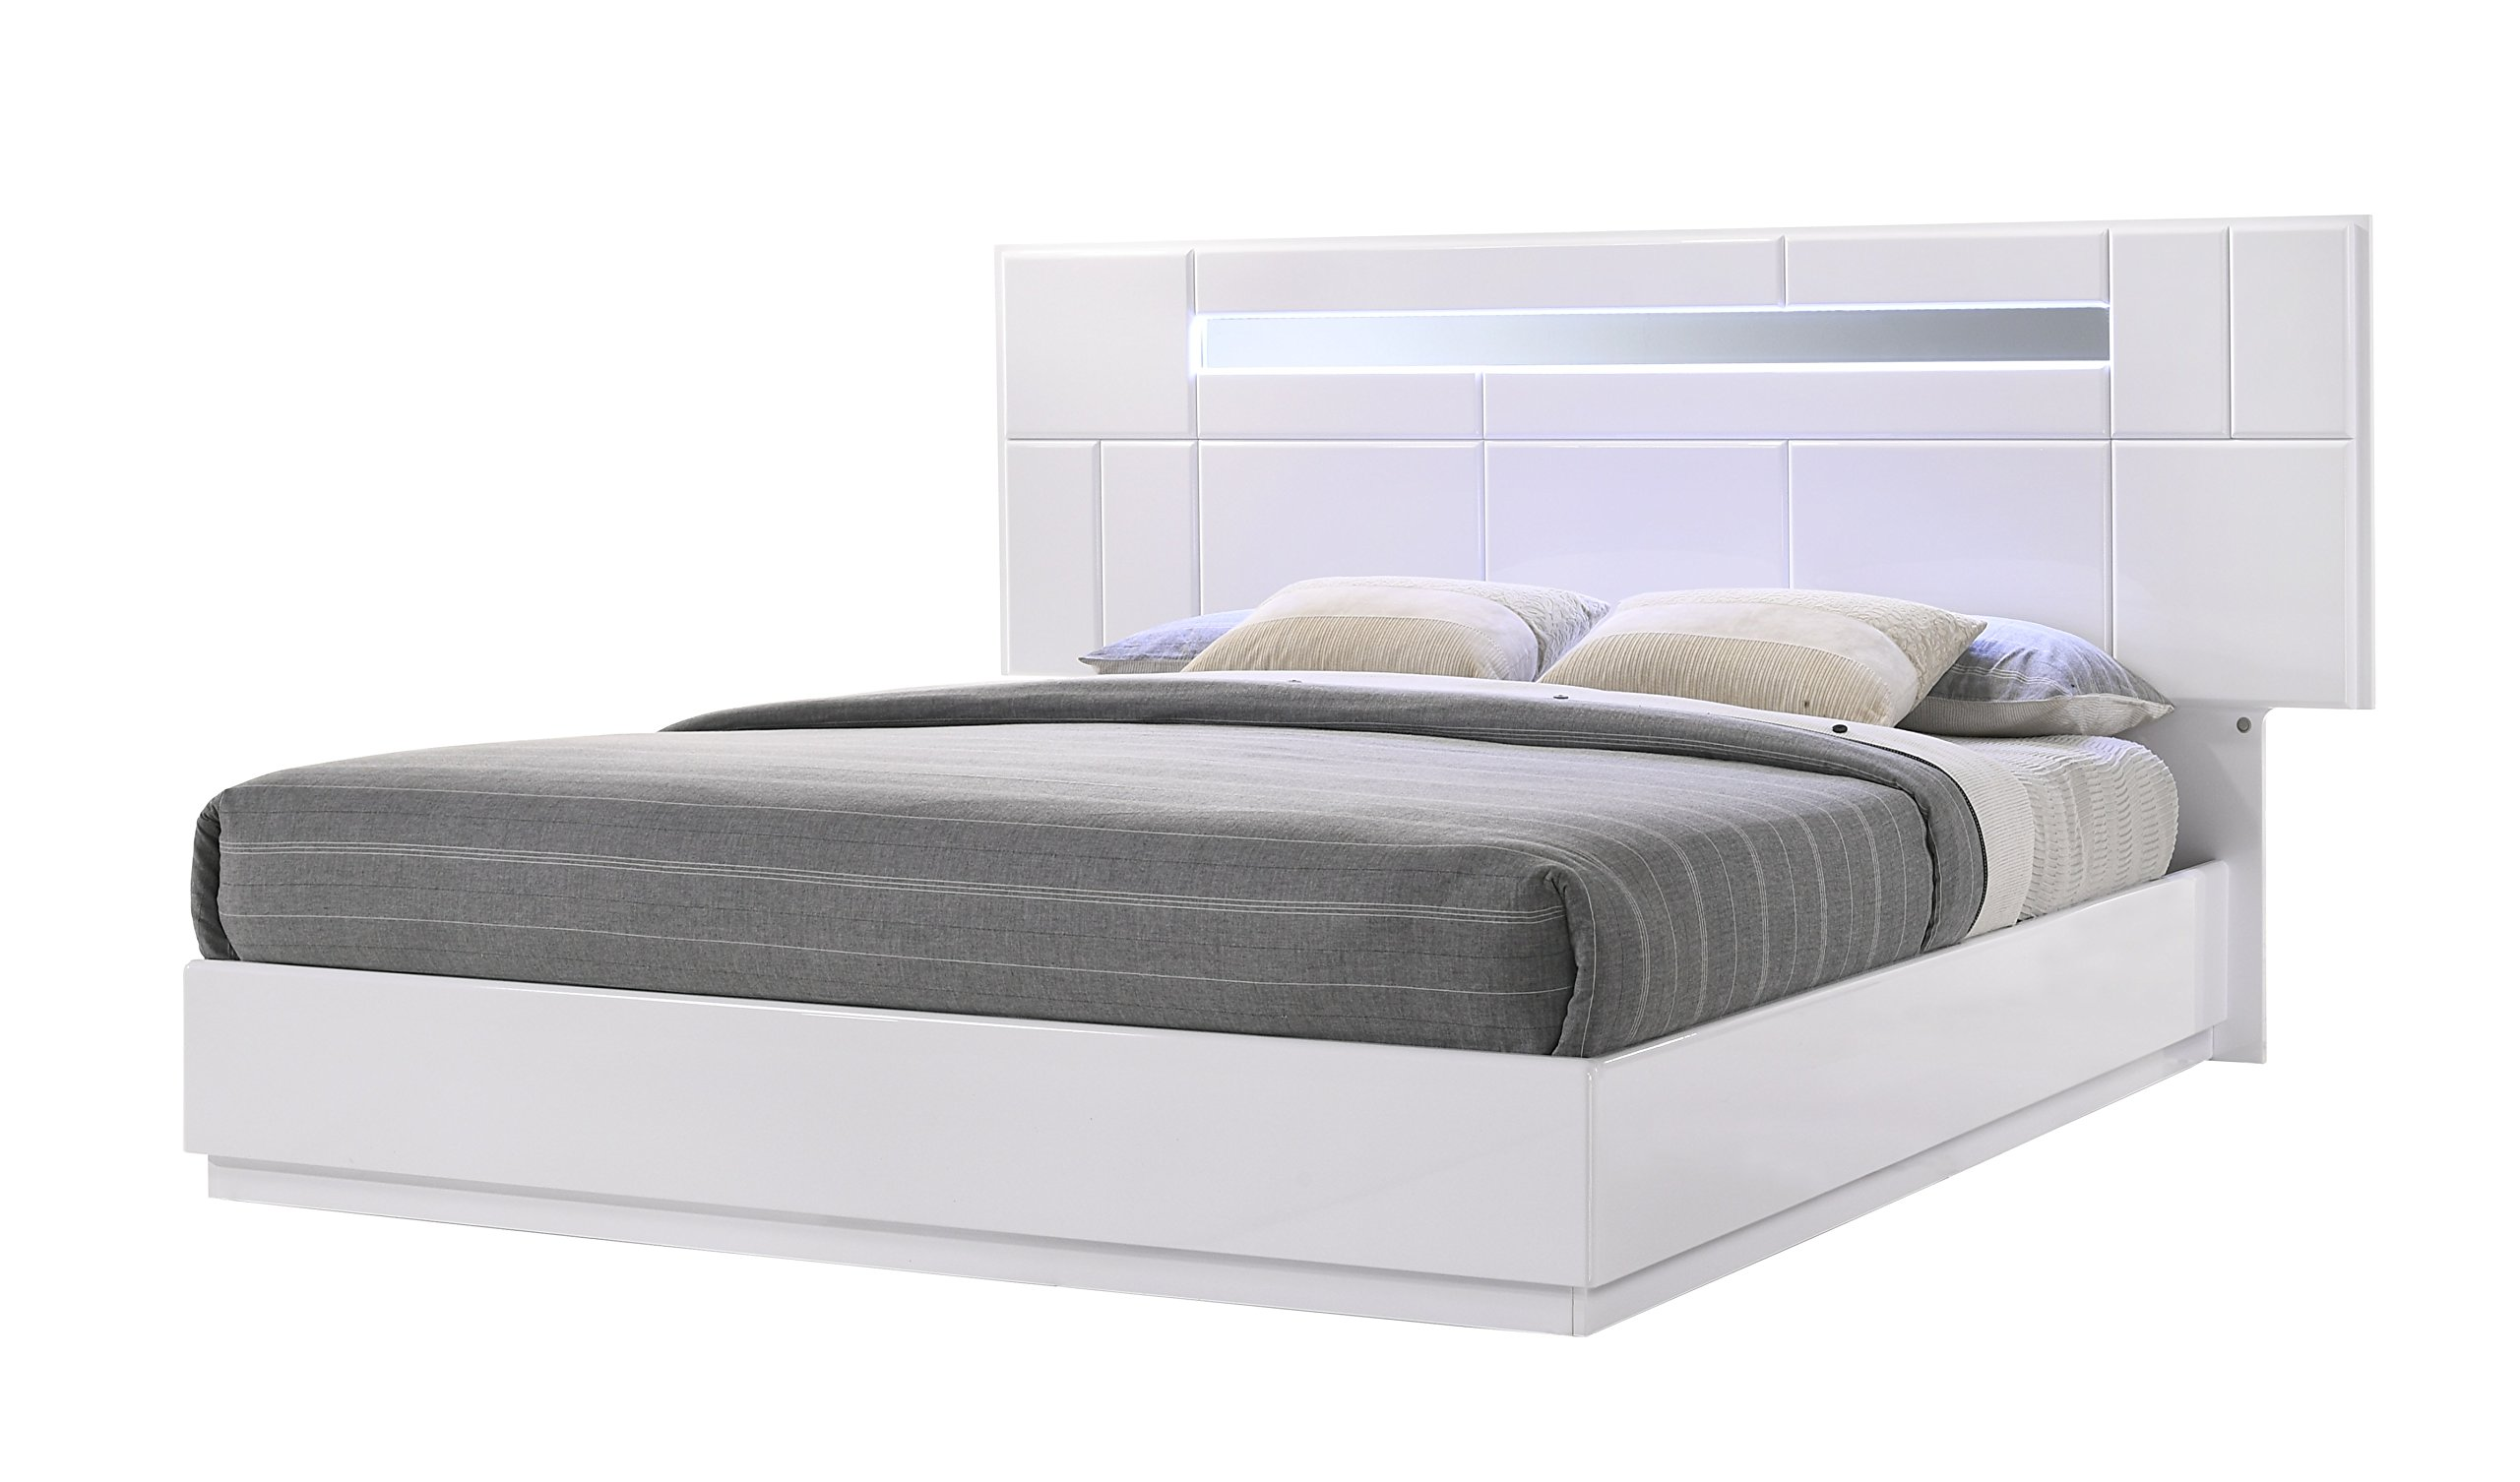 J and M Furniture Palermo Bed, King by J&M Furniture